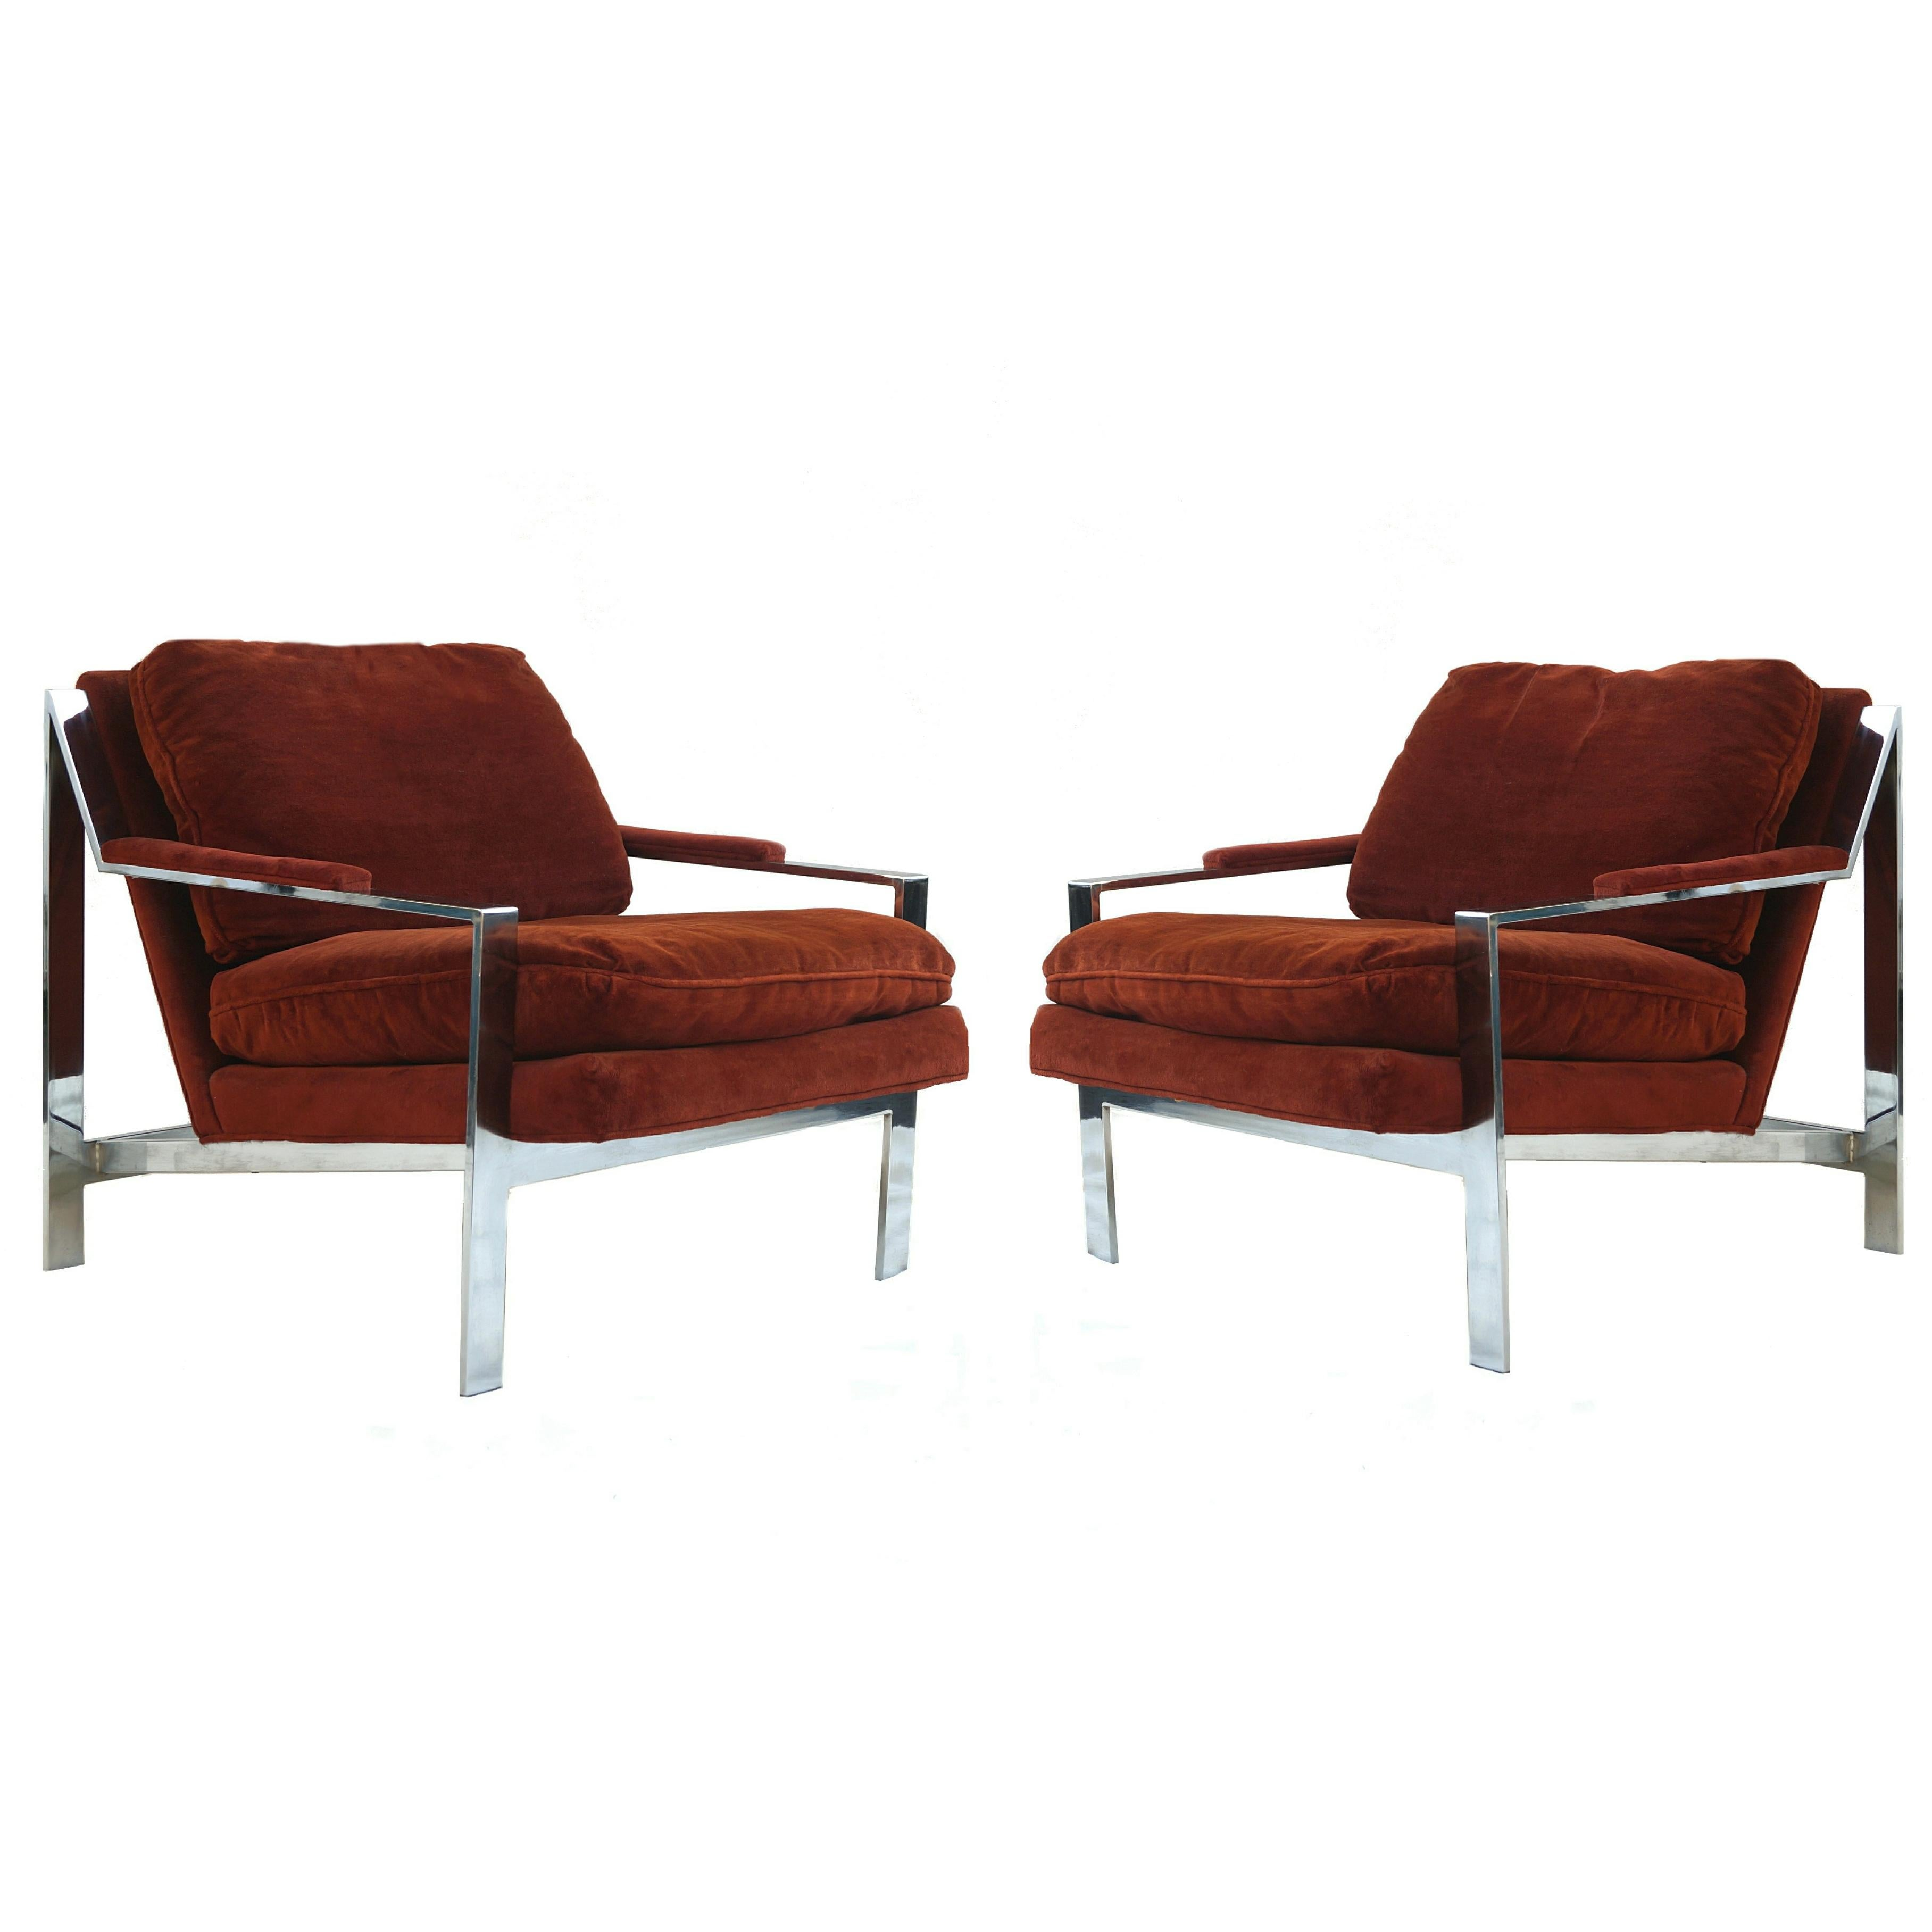 Merveilleux Pair Of Cy Mann Mid Century Modern Chrome Lounge Chairs